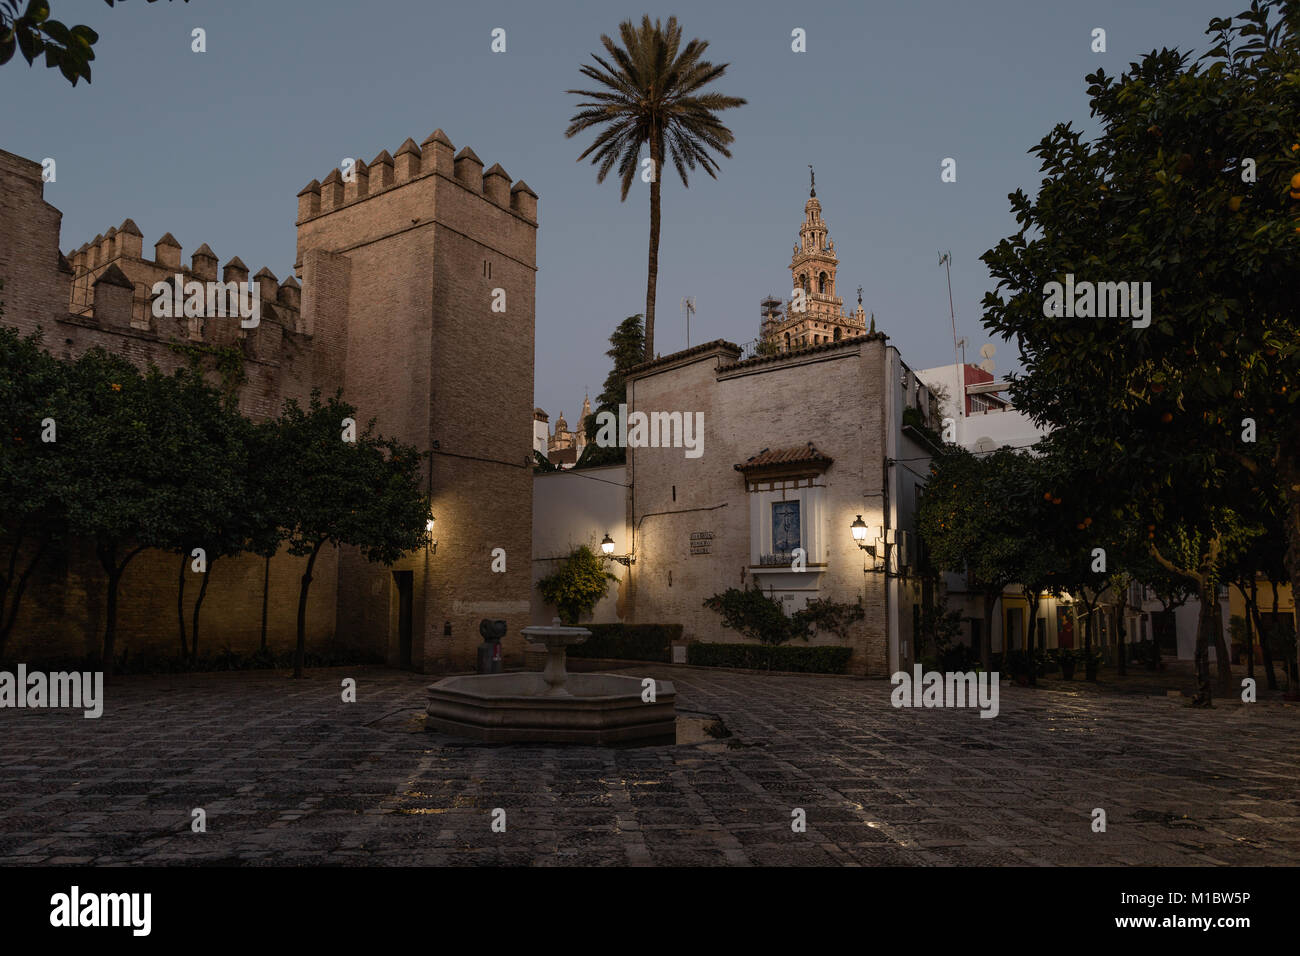 Walls of the Real Alcazar, Seville, Spain. - Stock Image